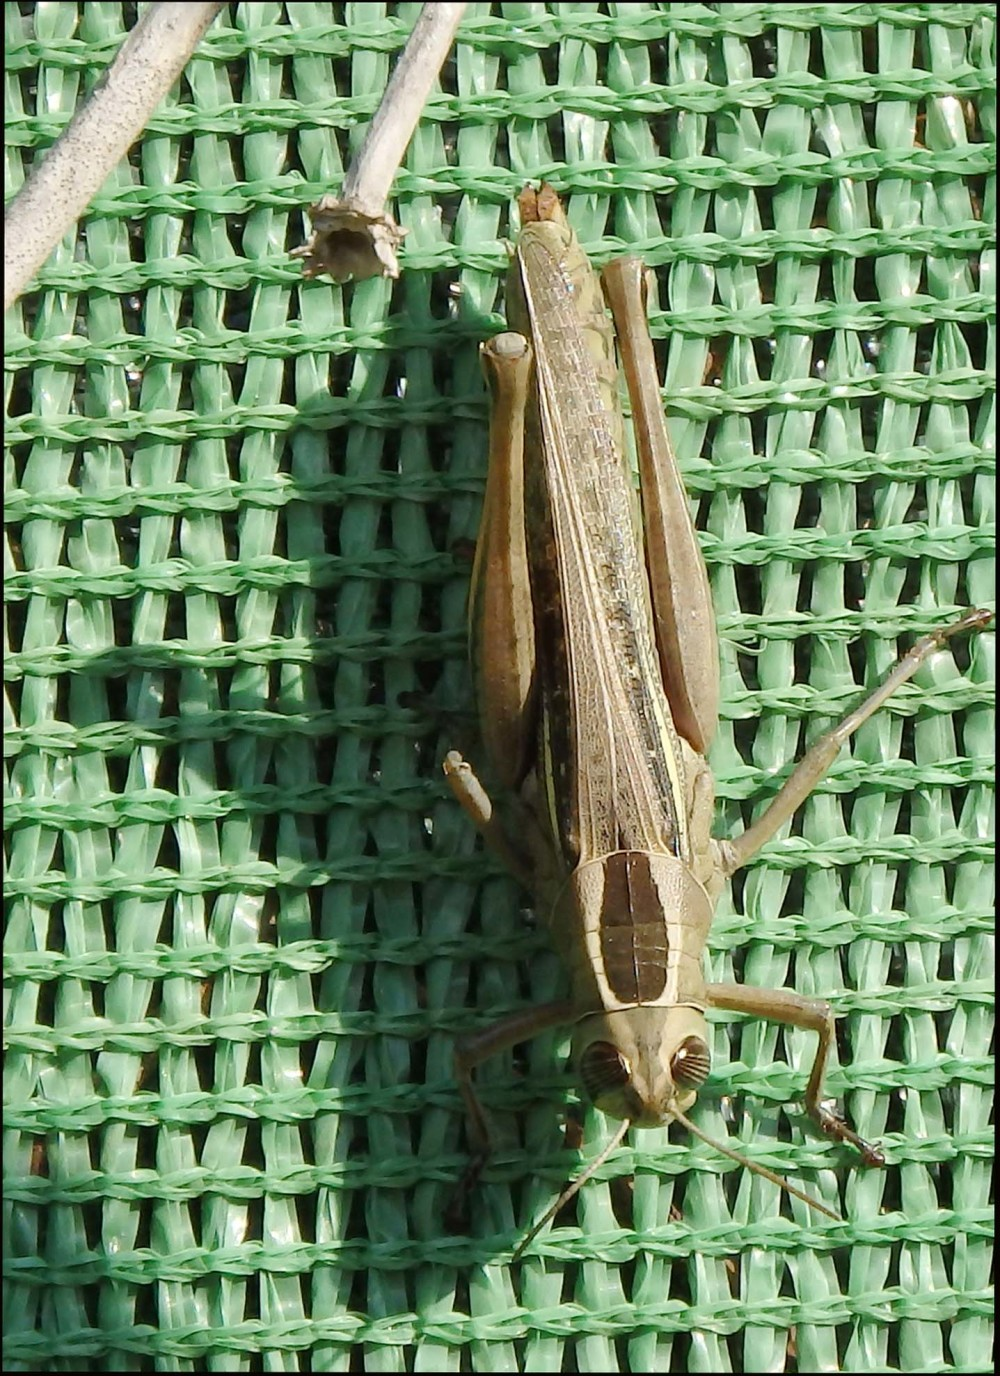 Grasshopper Resting on a Wall